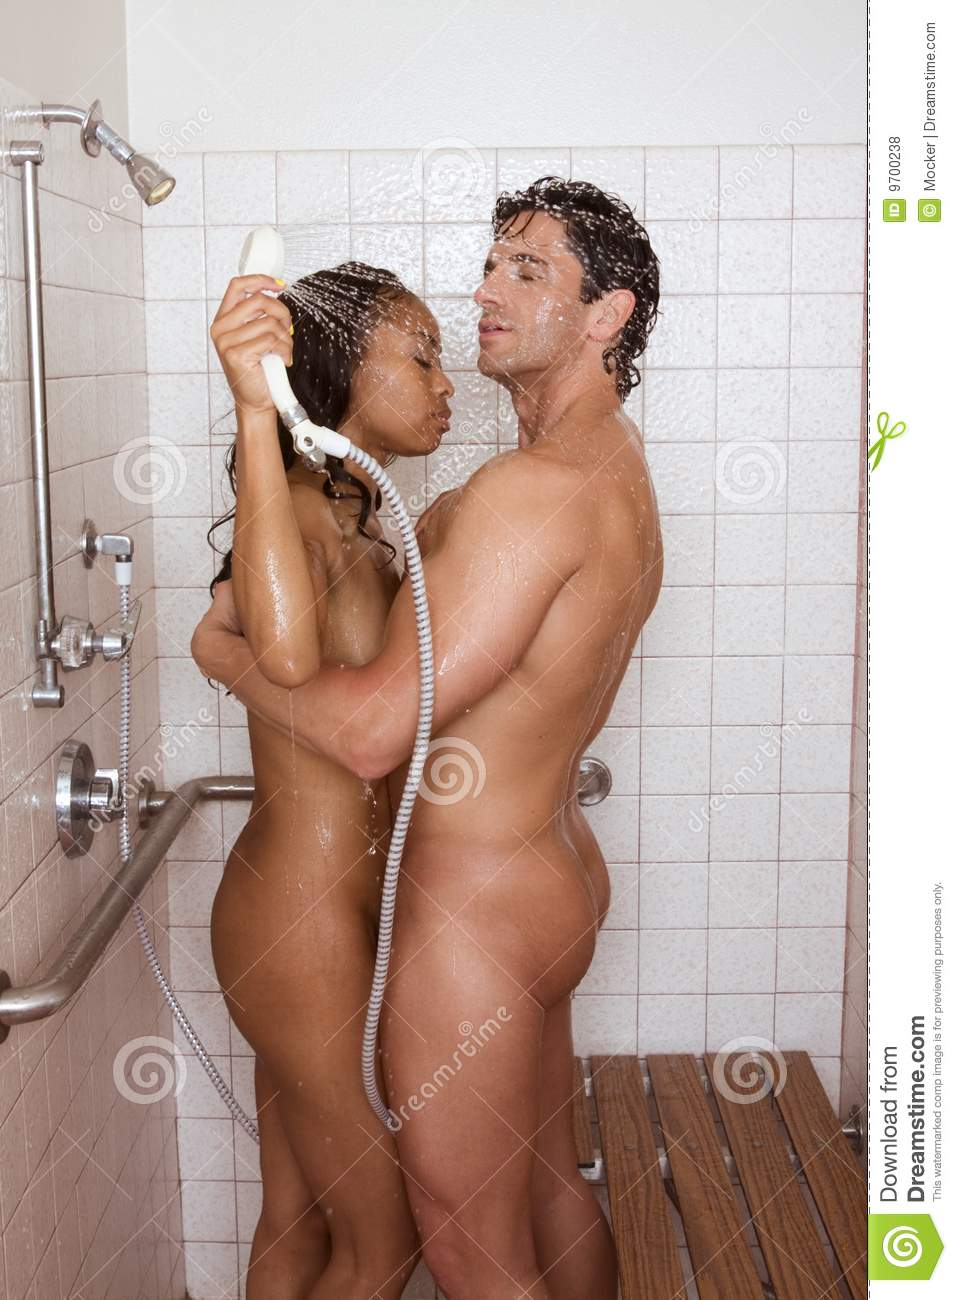 Recent research couple showering naked